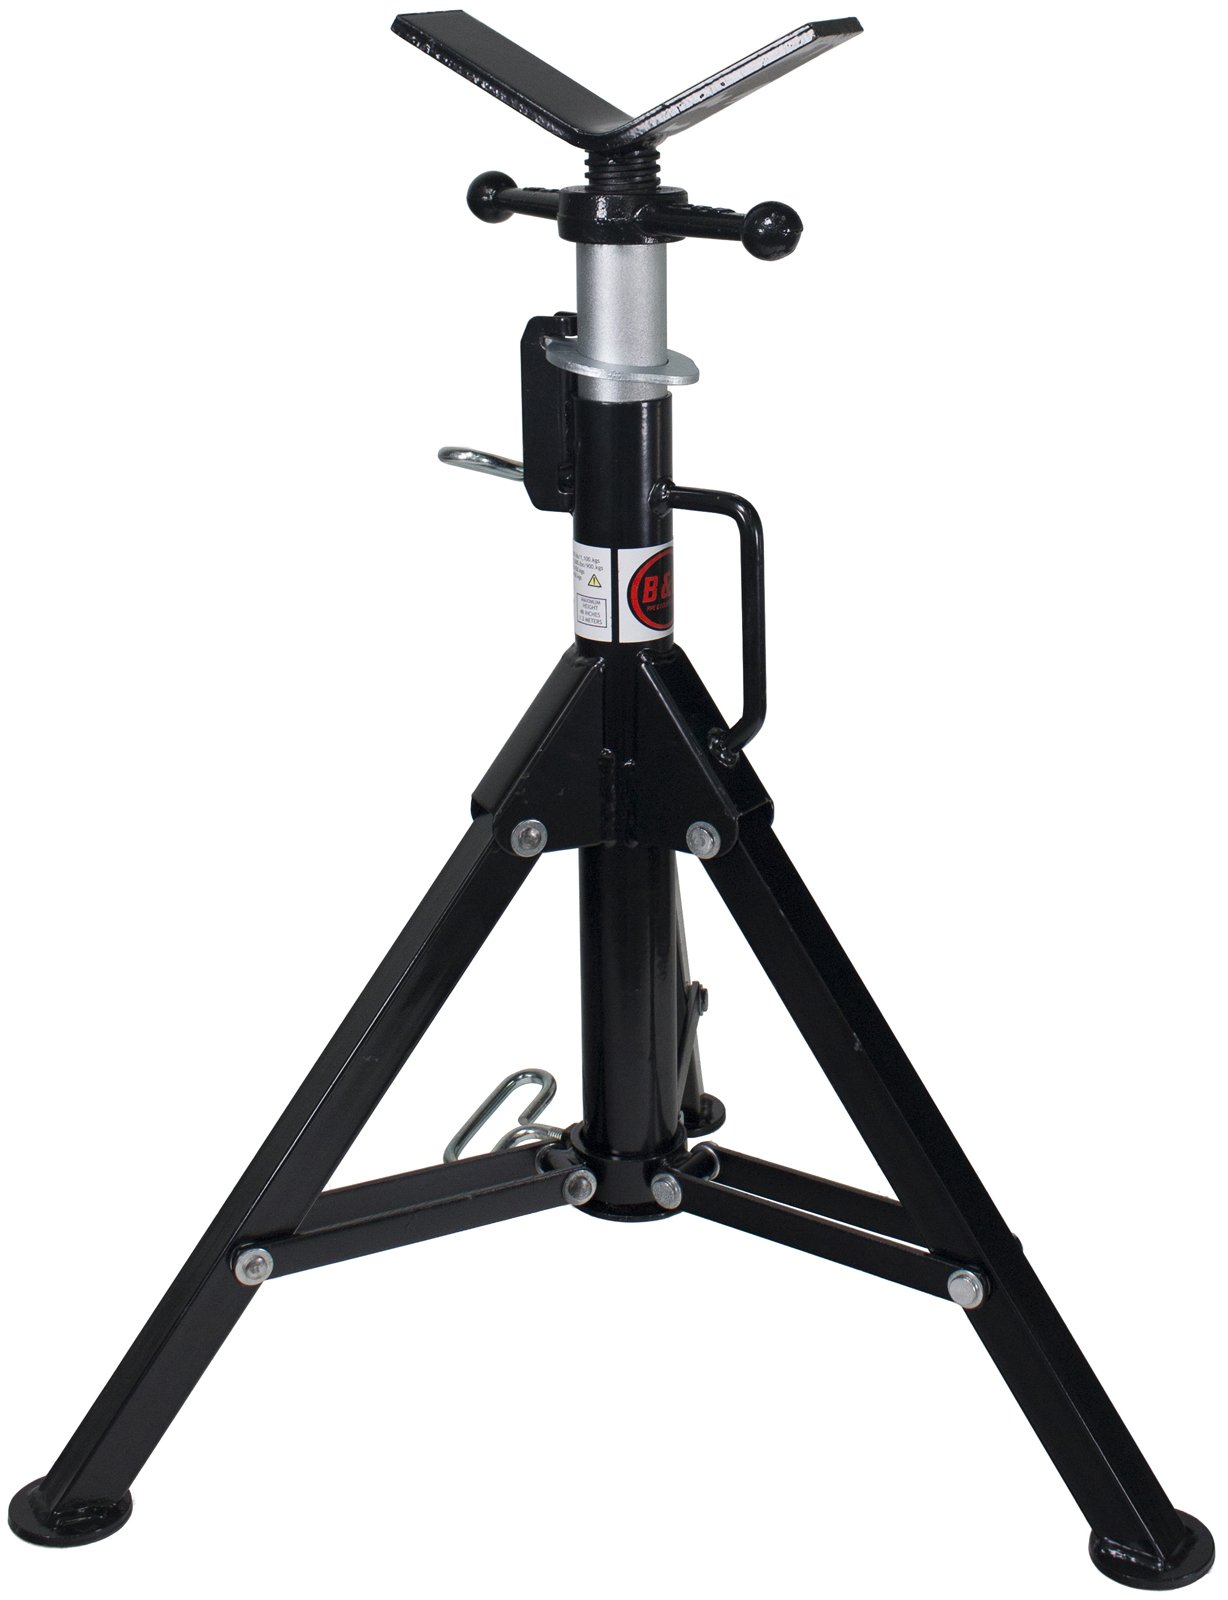 B&B Pipe 3900 High-Profile Adjustable Pipe Jack Stand with V-Head and Folding Legs for Pipe Fitting, Threading, Welding by B & B Pipe